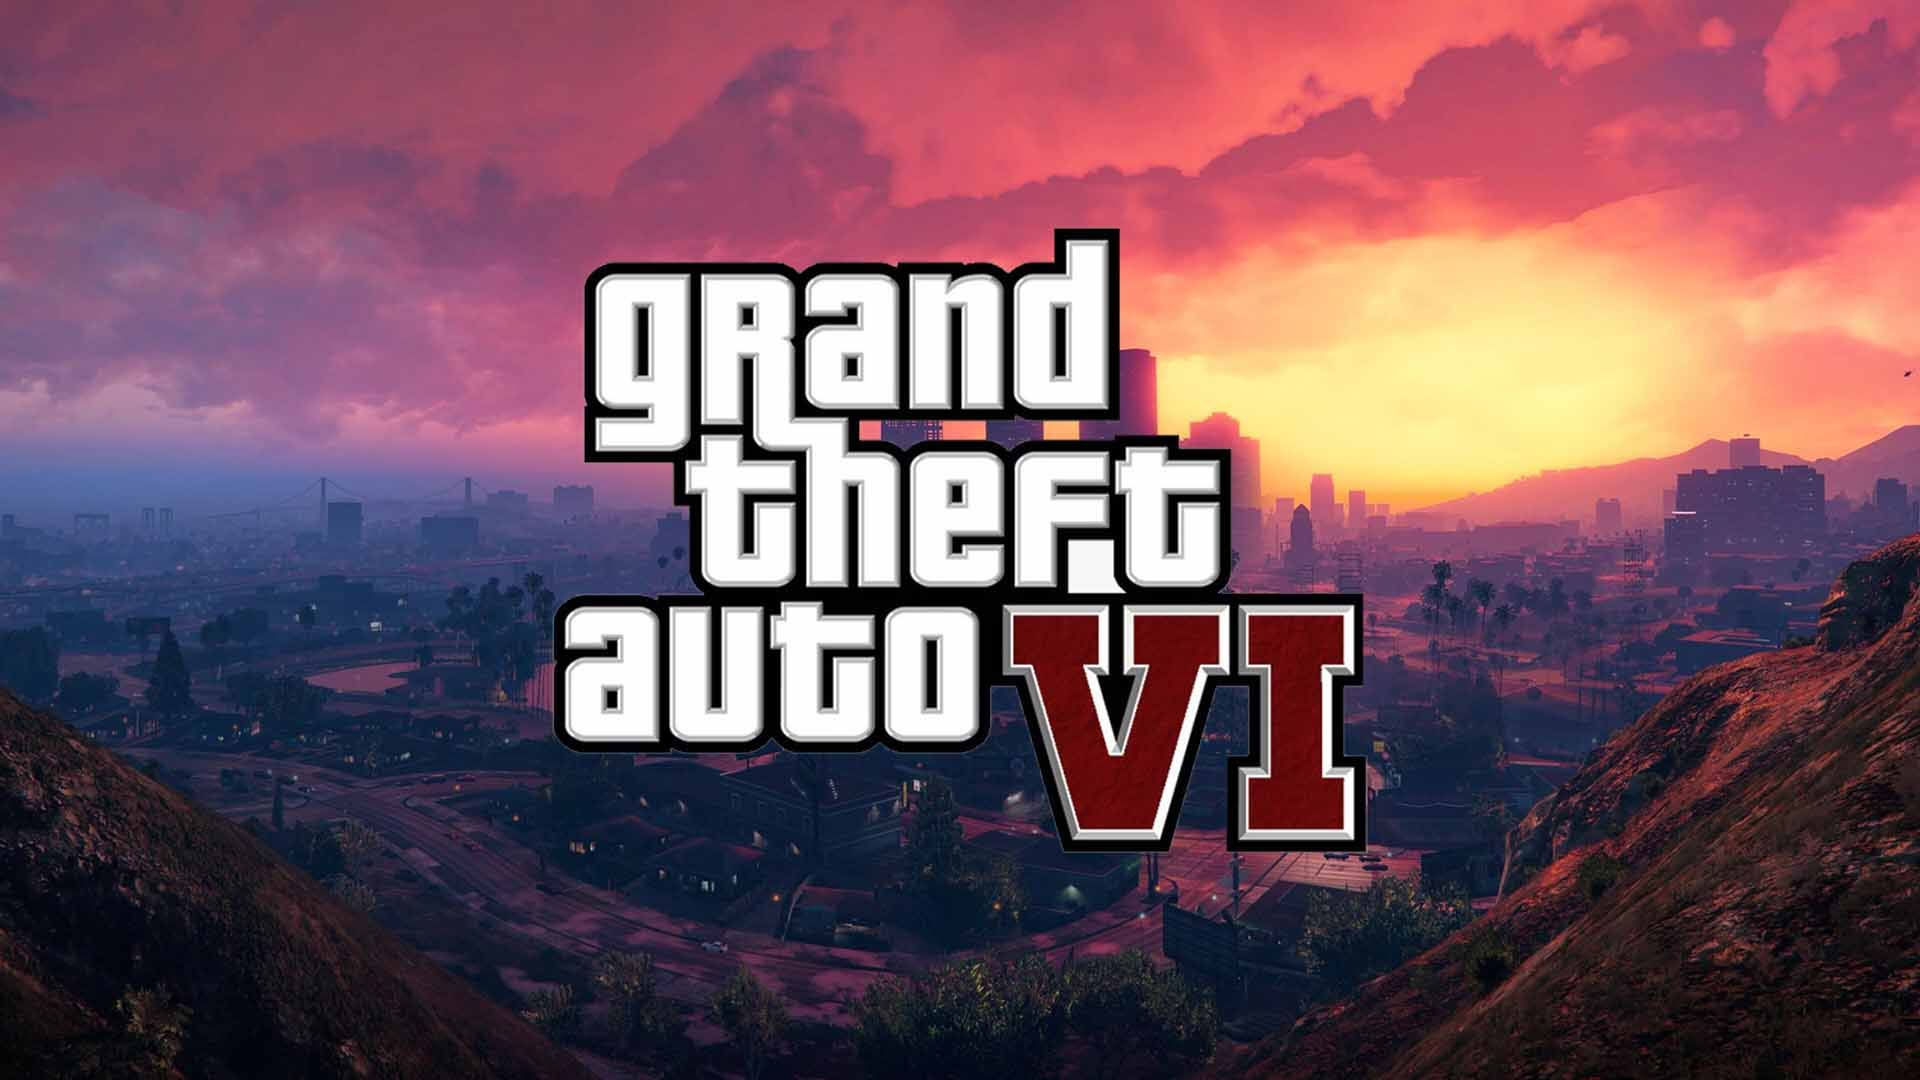 Is Rockstar claiming an impressive patent for GTA VI?